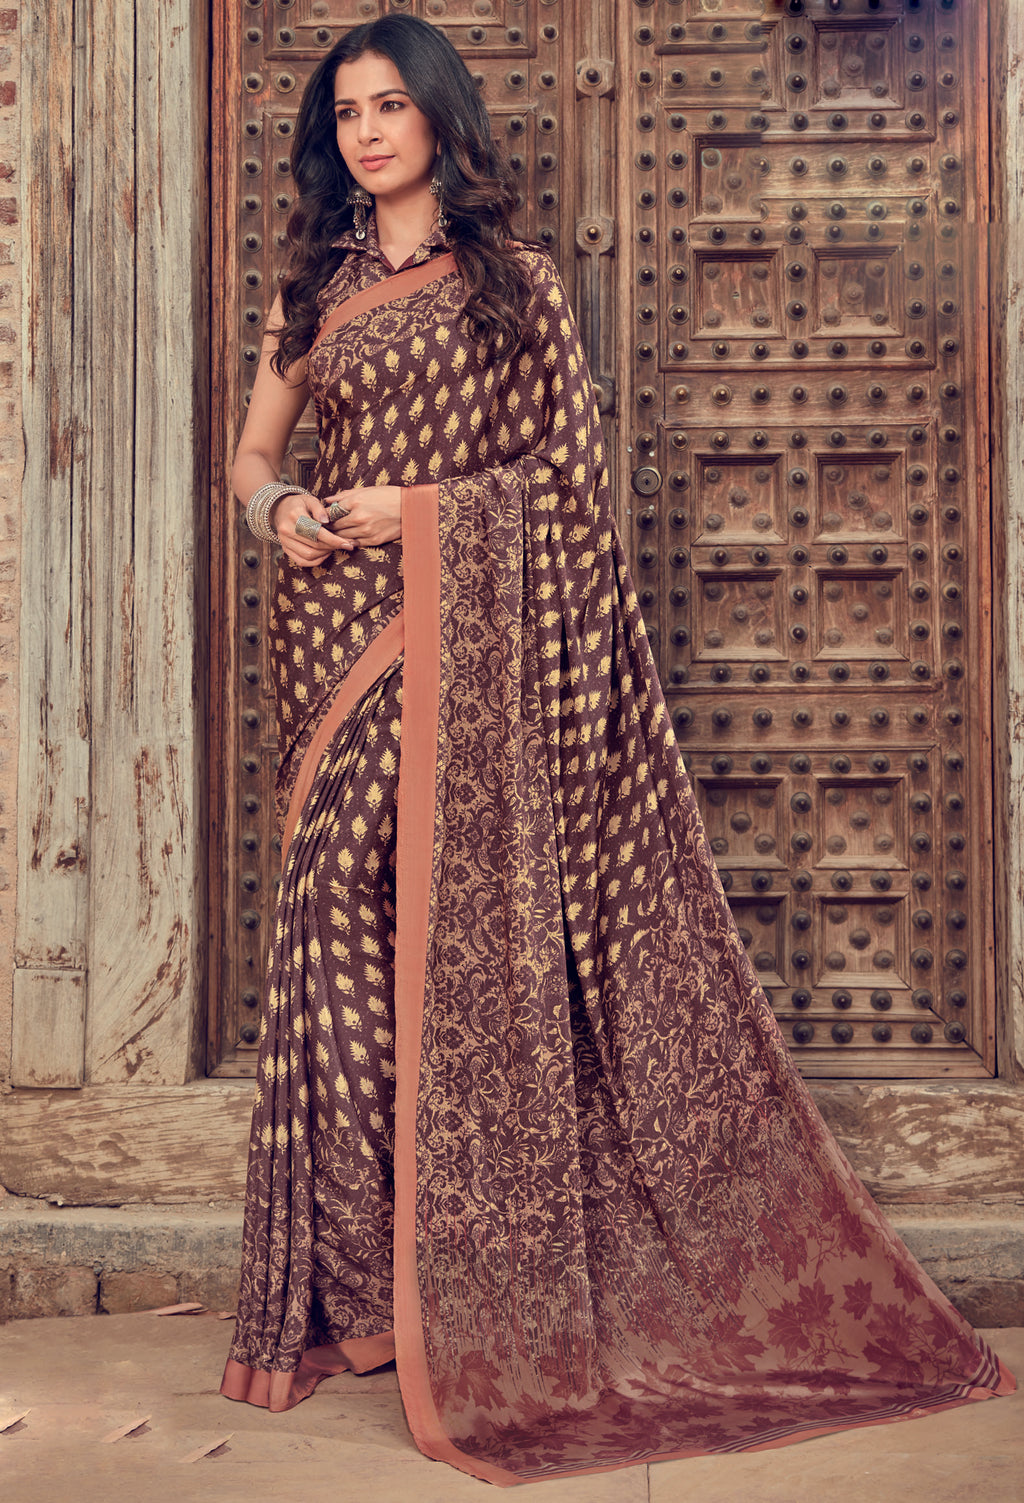 Brown Color Crepe Silk Kitty Party Sarees NYF-8478